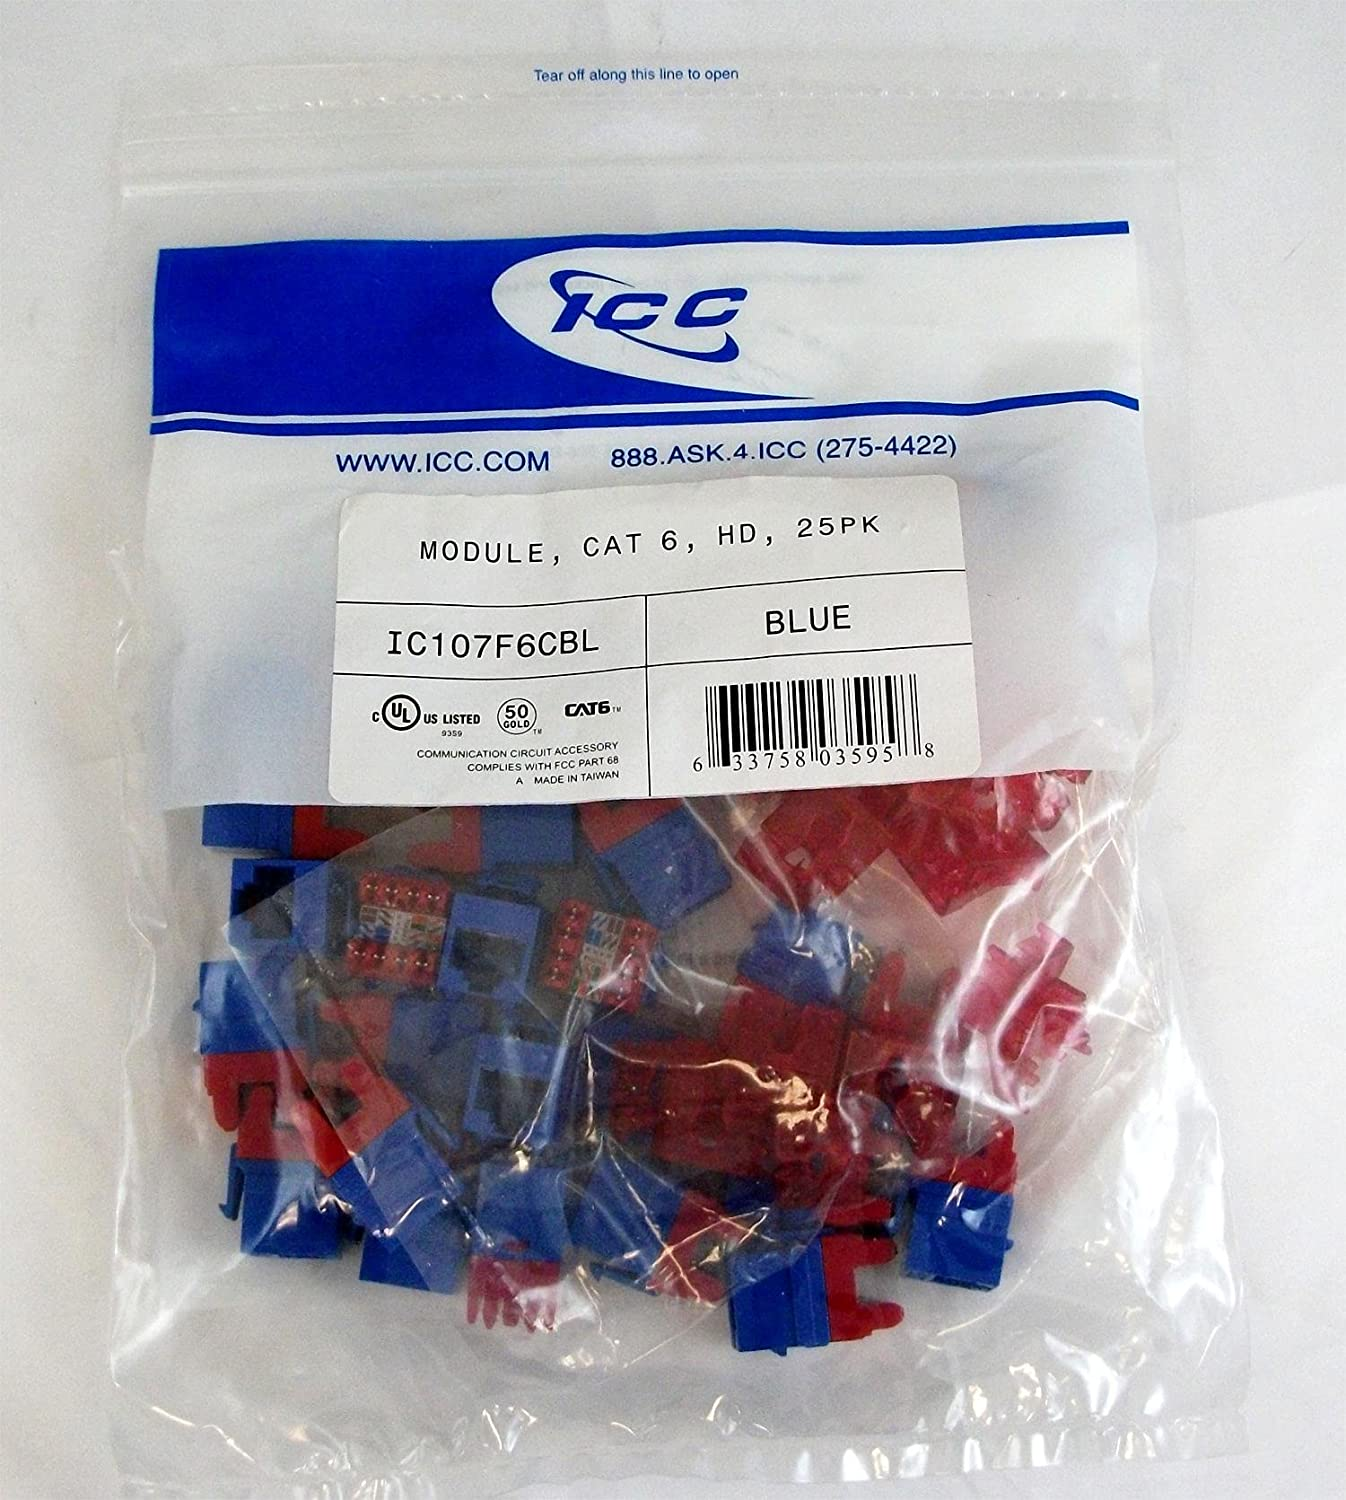 Amazon.com: MODULE, CAT 6, HD, 25PK, BLUE-ICC-Installation Equipment-Wall  Jacks/Inserts: Electronics